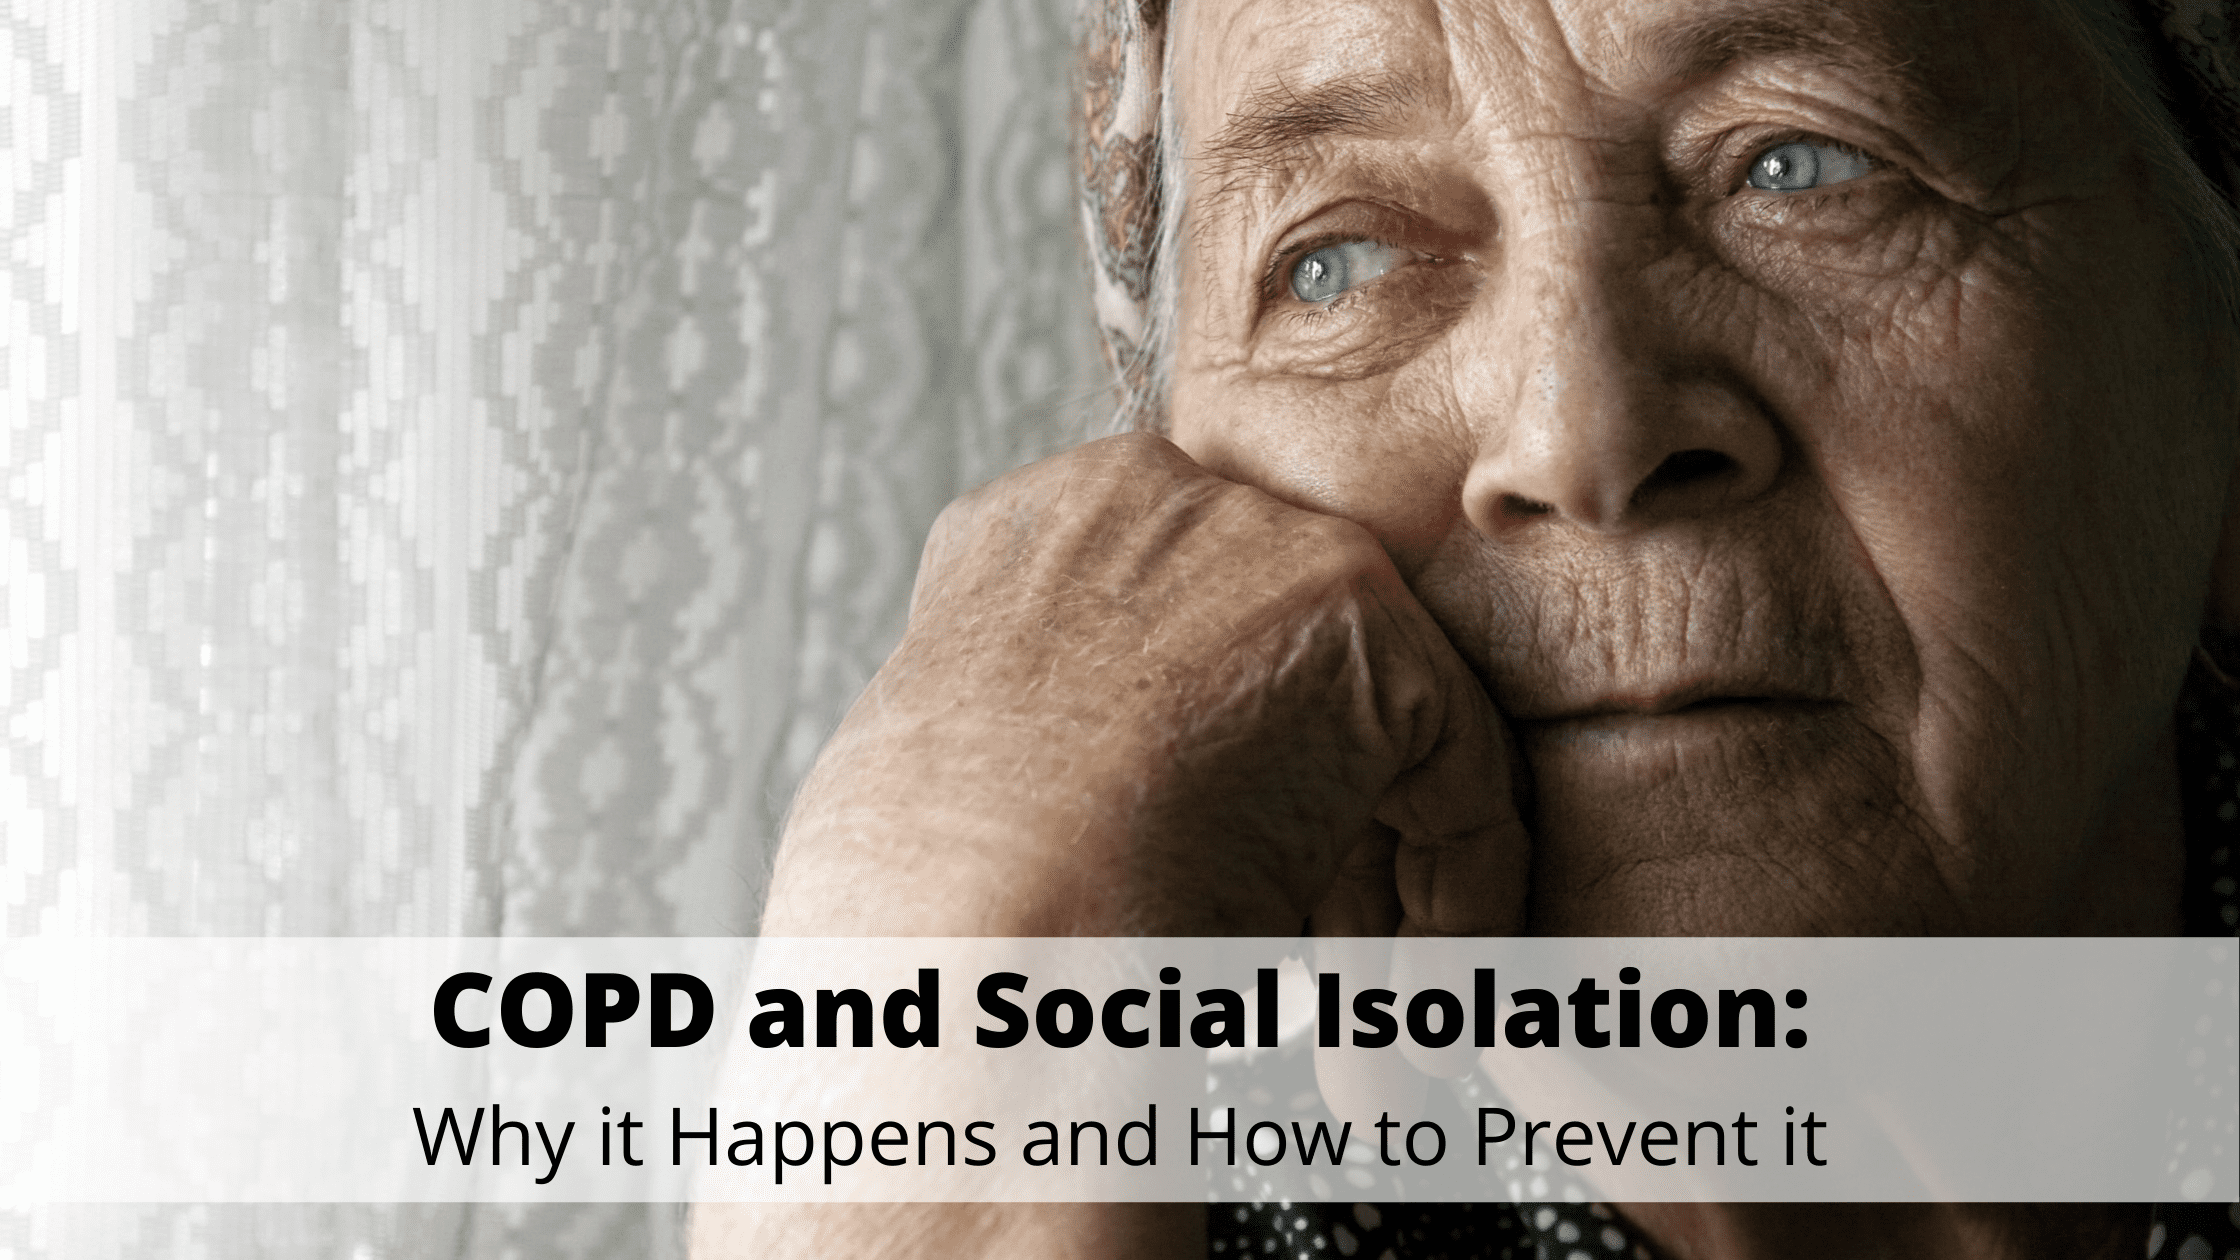 COPD and Social Isolation